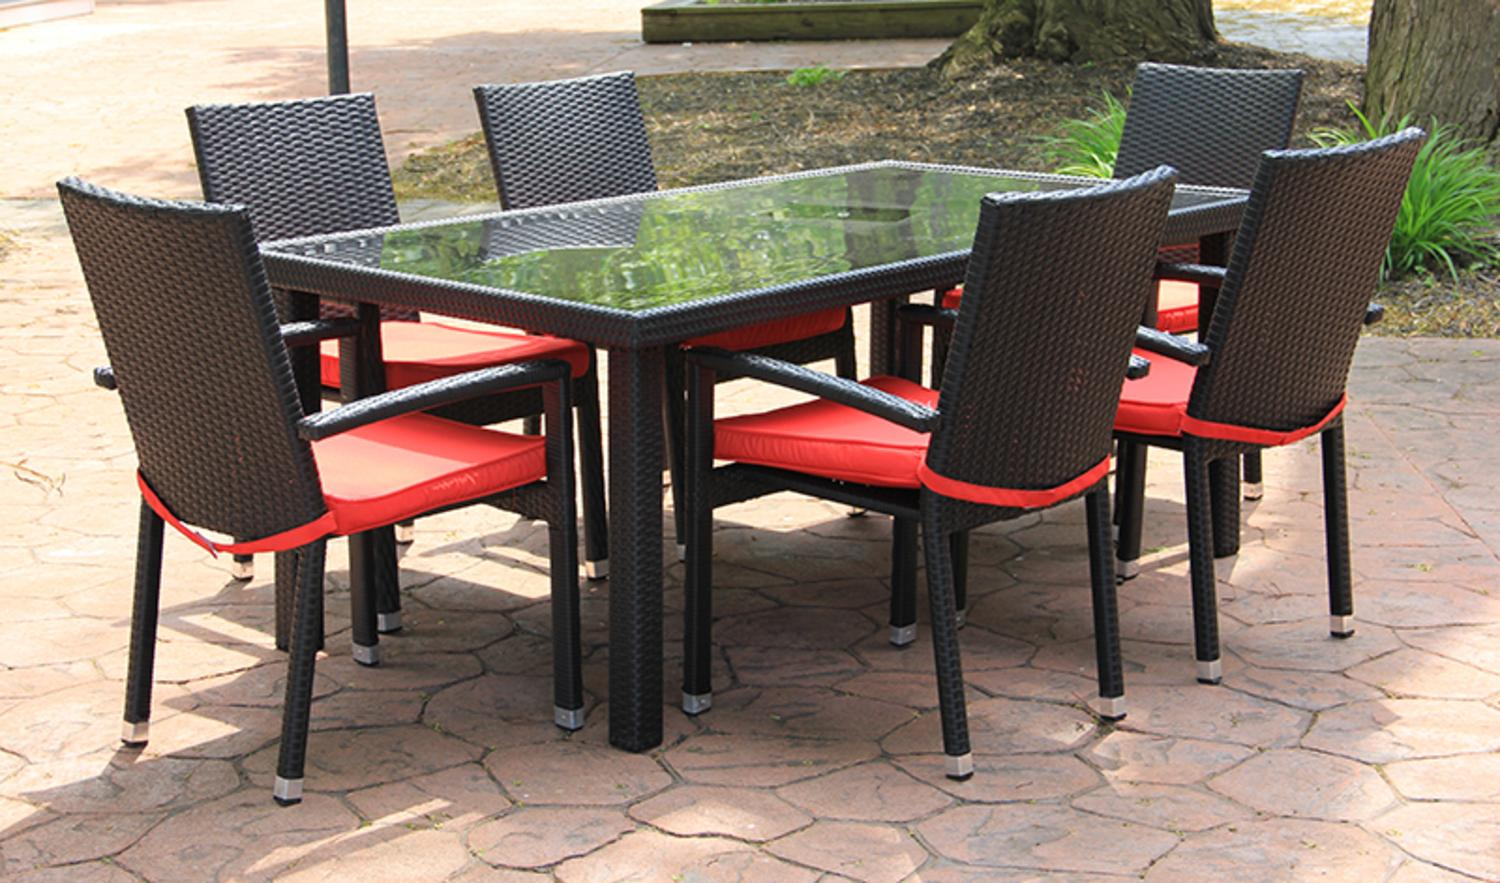 7 Piece Black Resin Wicker Outdoor Furniture Patio Dining Set   Red  Cushions   Walmart.com